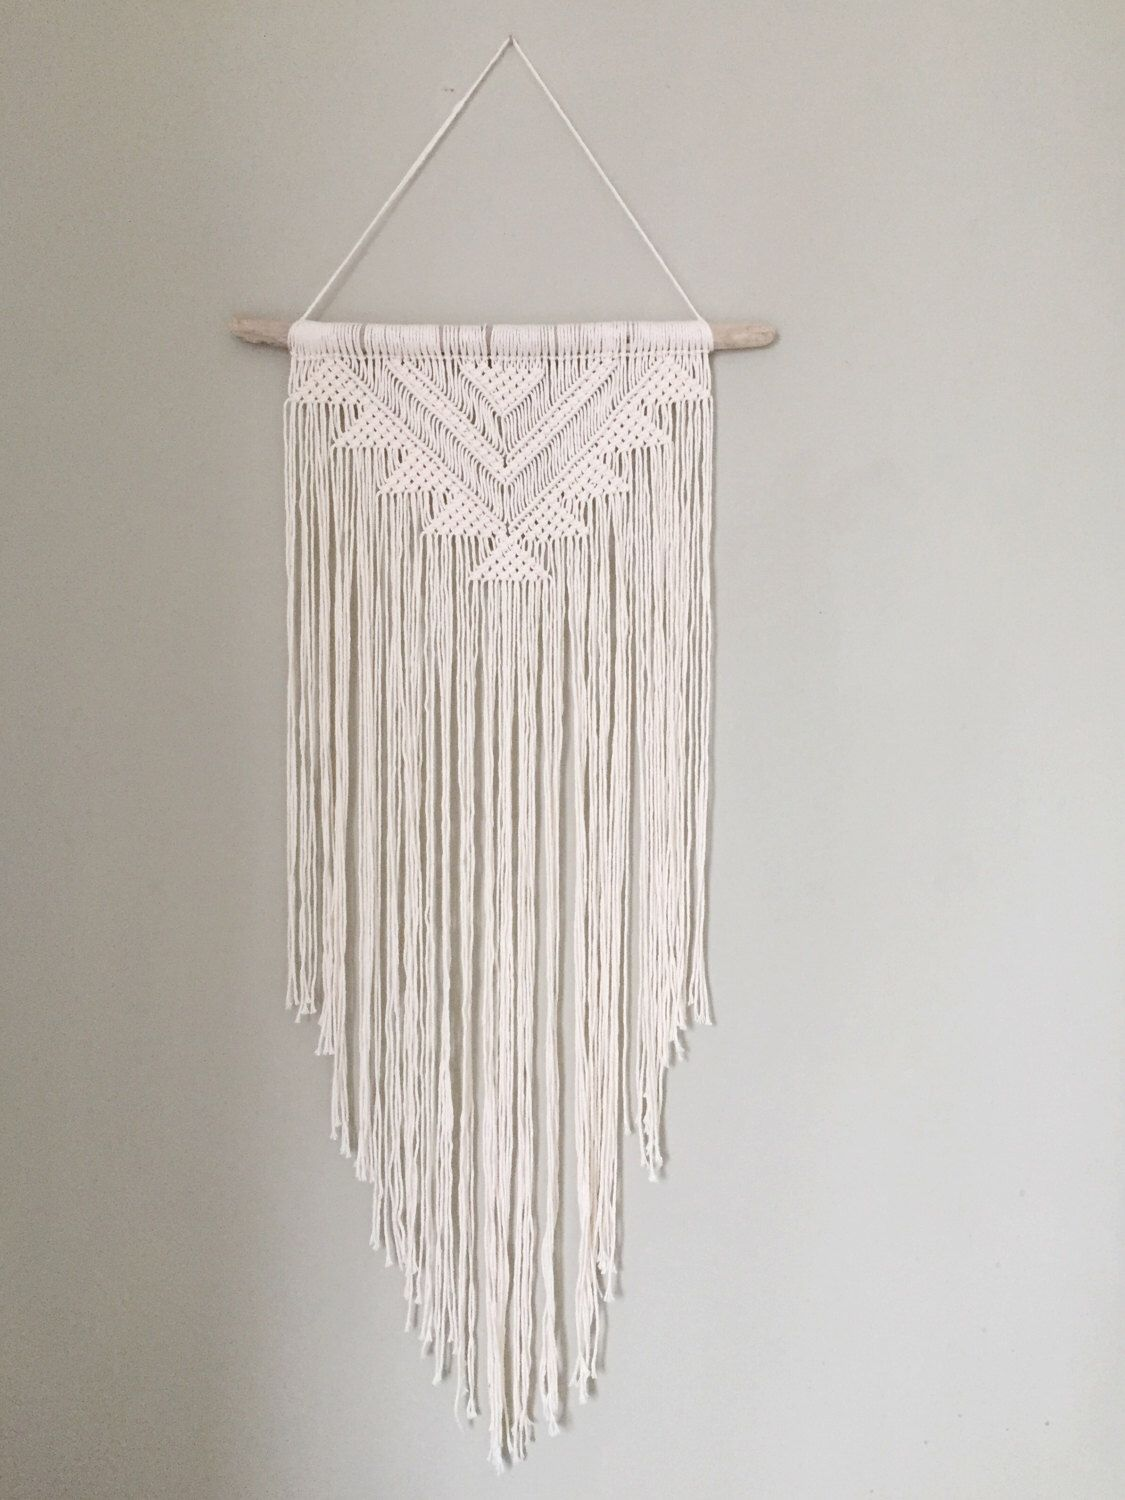 Amazing Handmade Macrame Wall Hanging Wall Decor Boho Chic Wall Art Aztec Bohemian  Creme Cotton Organic Yarn Tapestry Weave Crochet MADE TO ORDER By BobellaCo  On ...